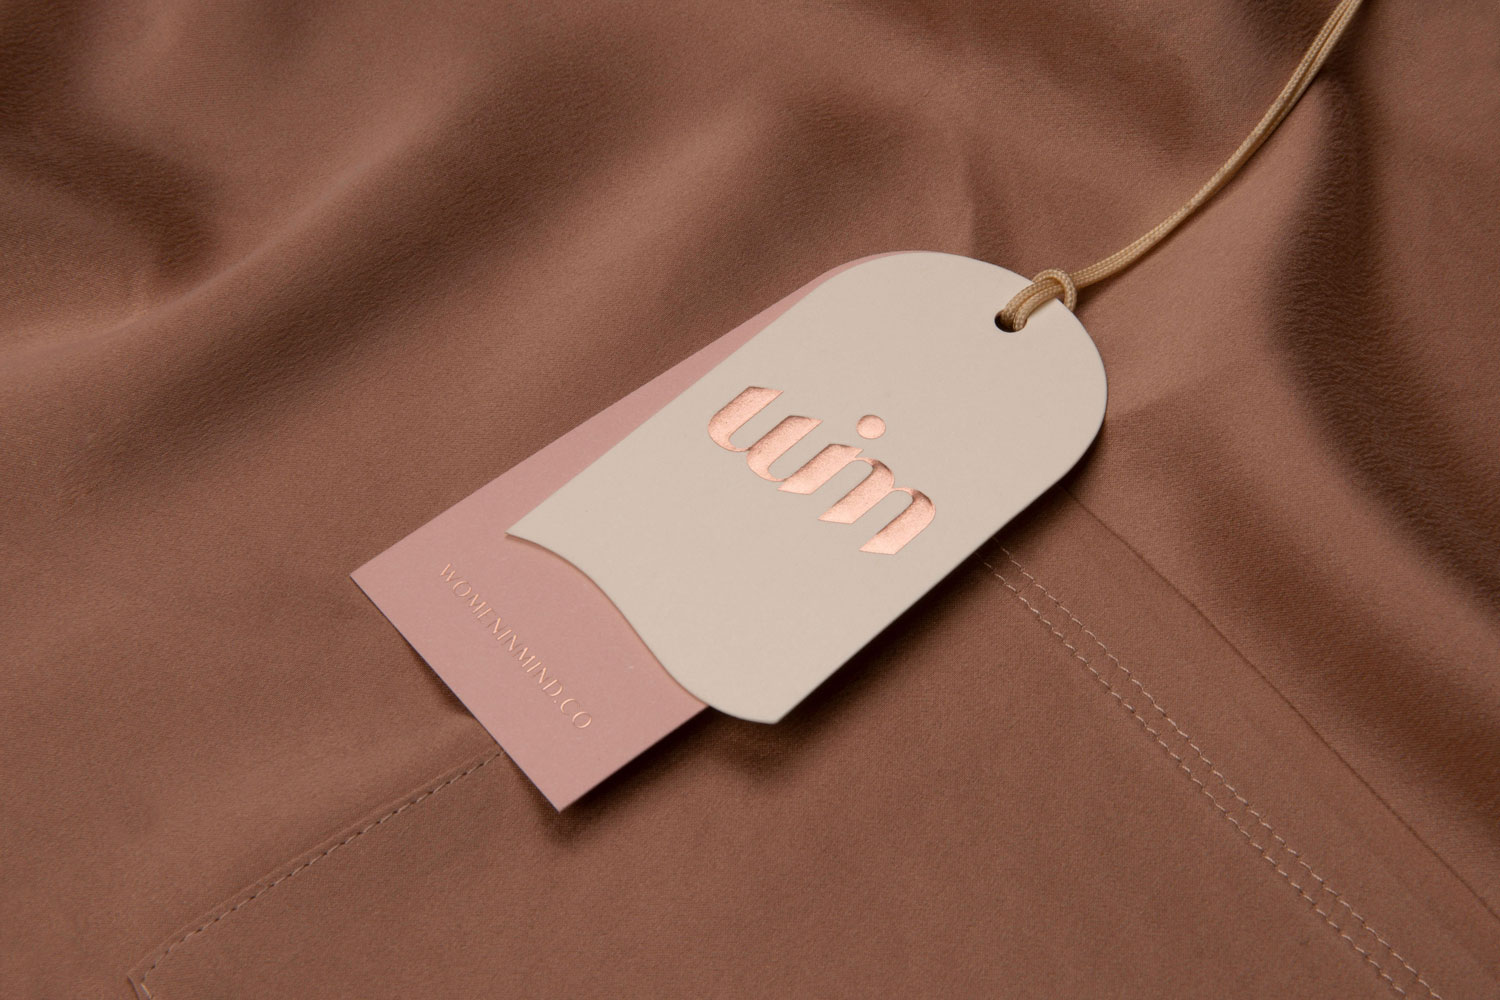 A WIM clothes tag on suede